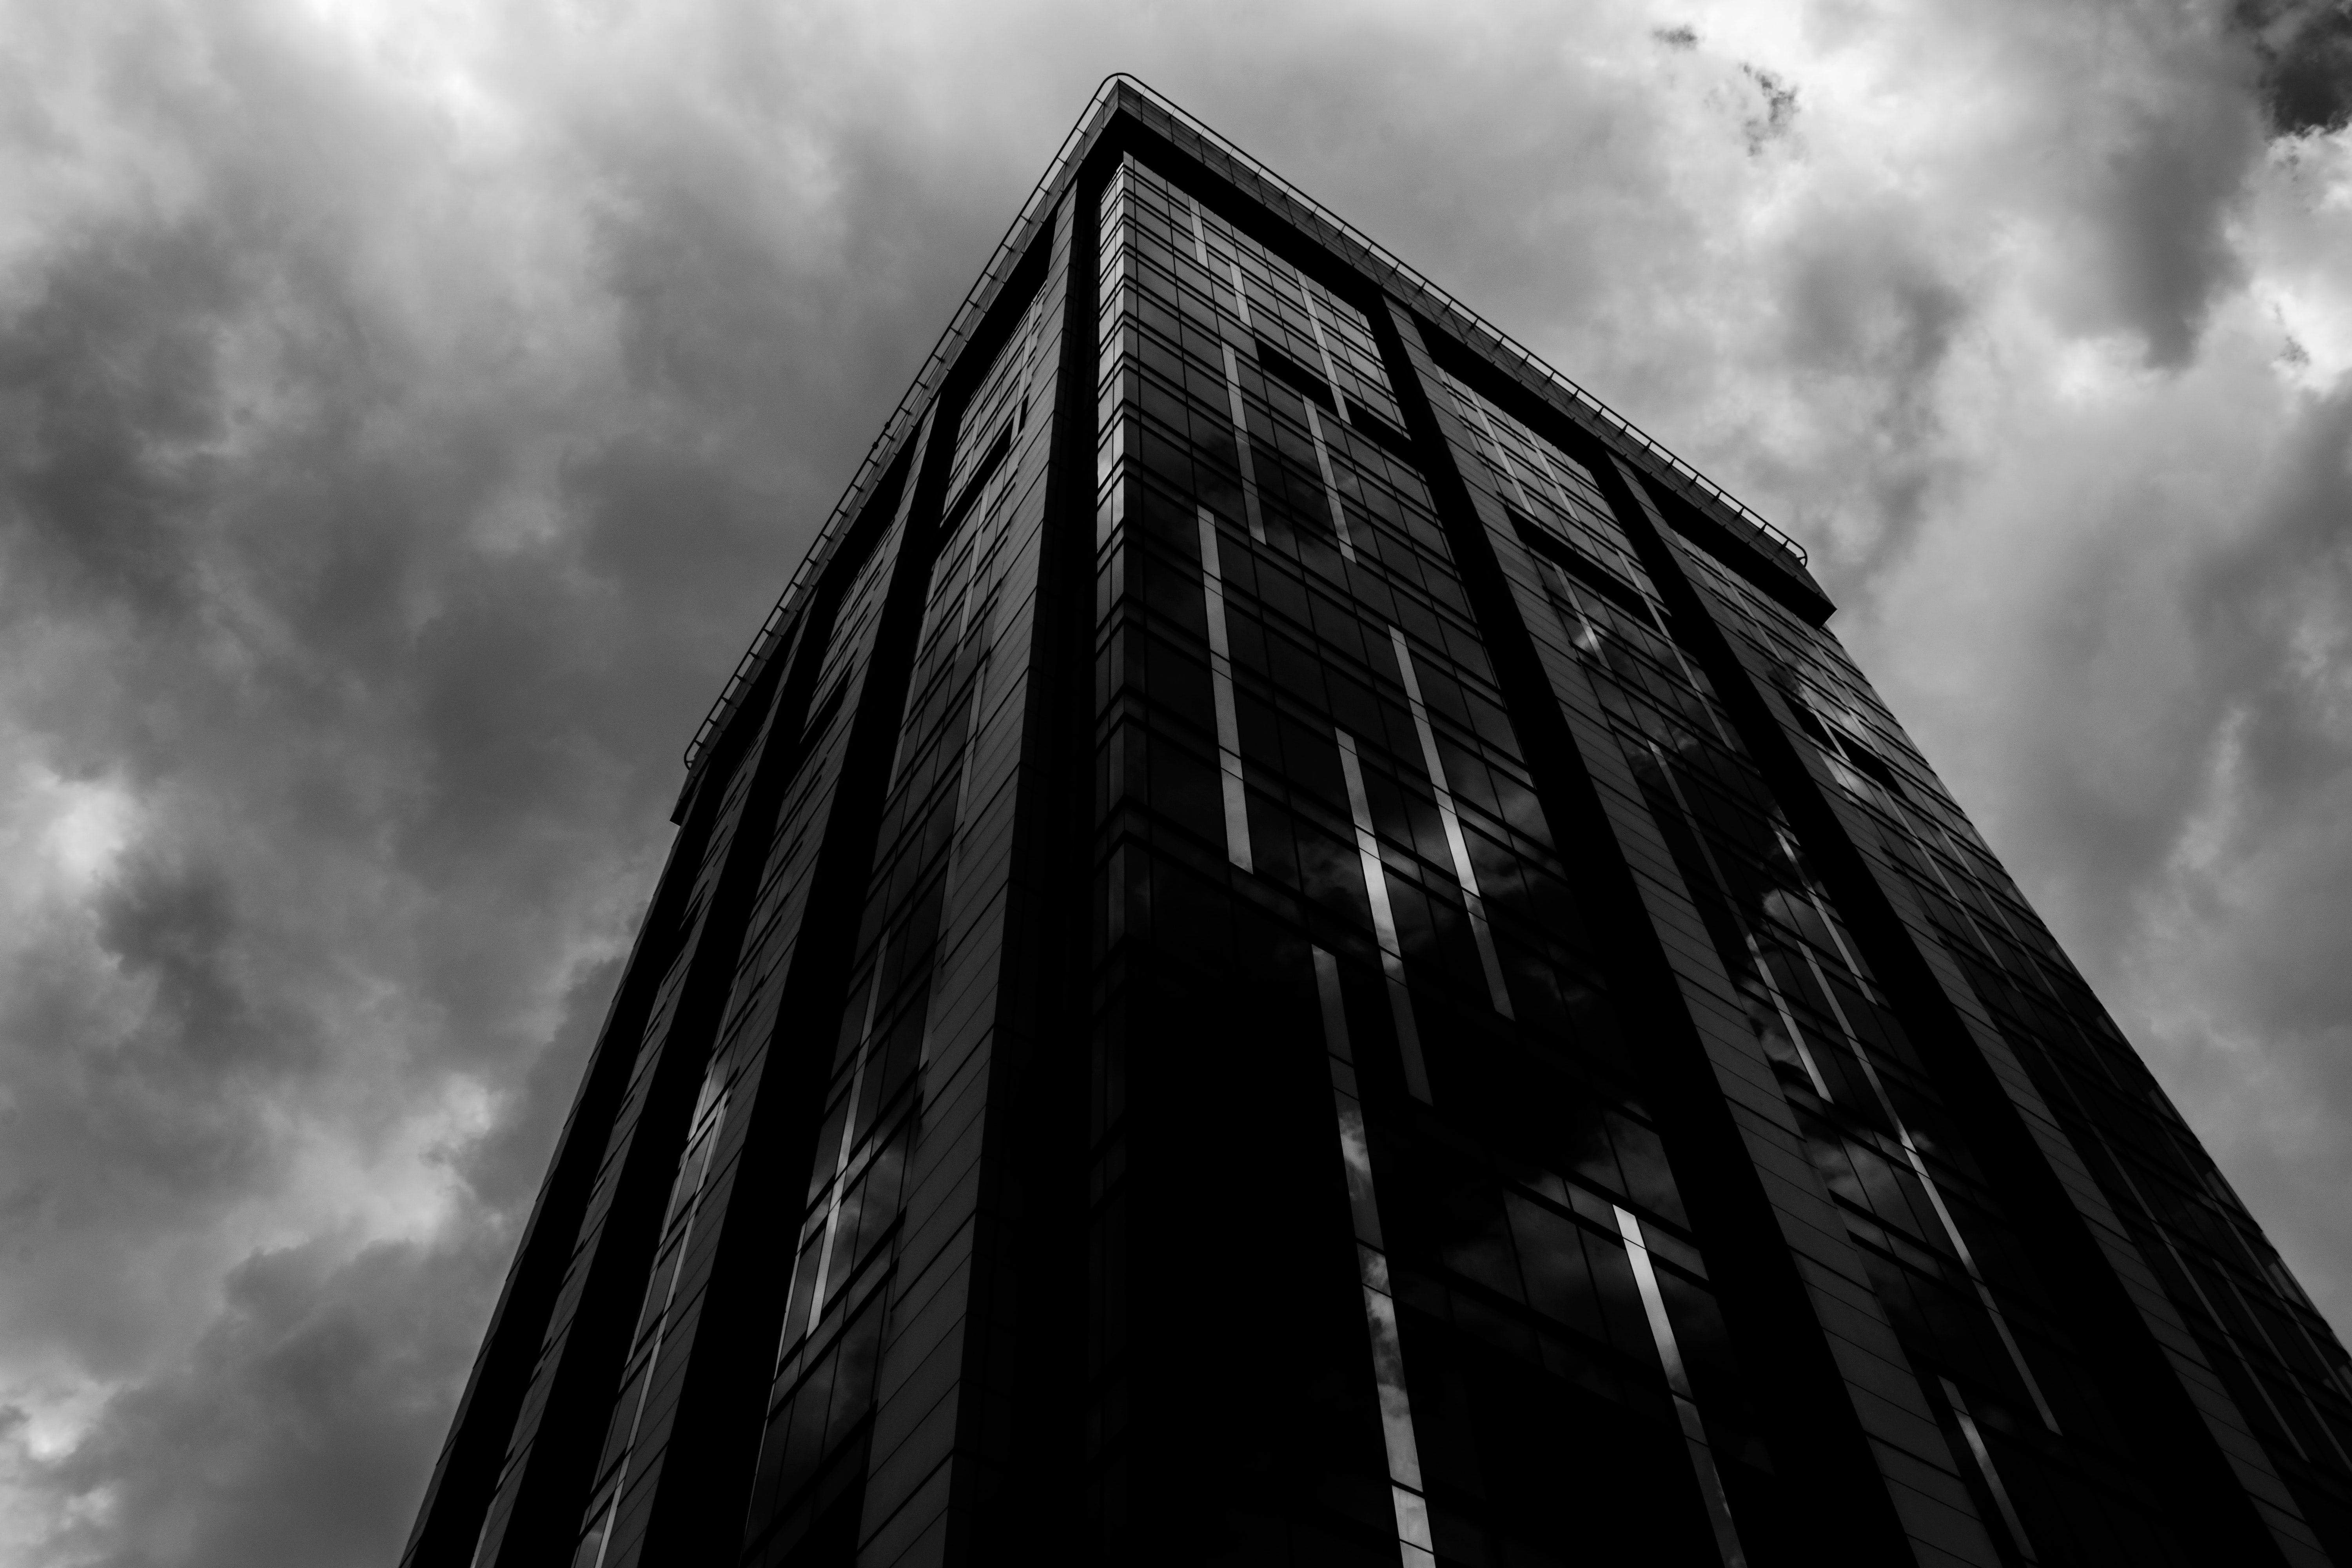 Low Angle Photography Of Building Free Stock Photo: Low Angle Photo Of Building Under Sky · Free Stock Photo